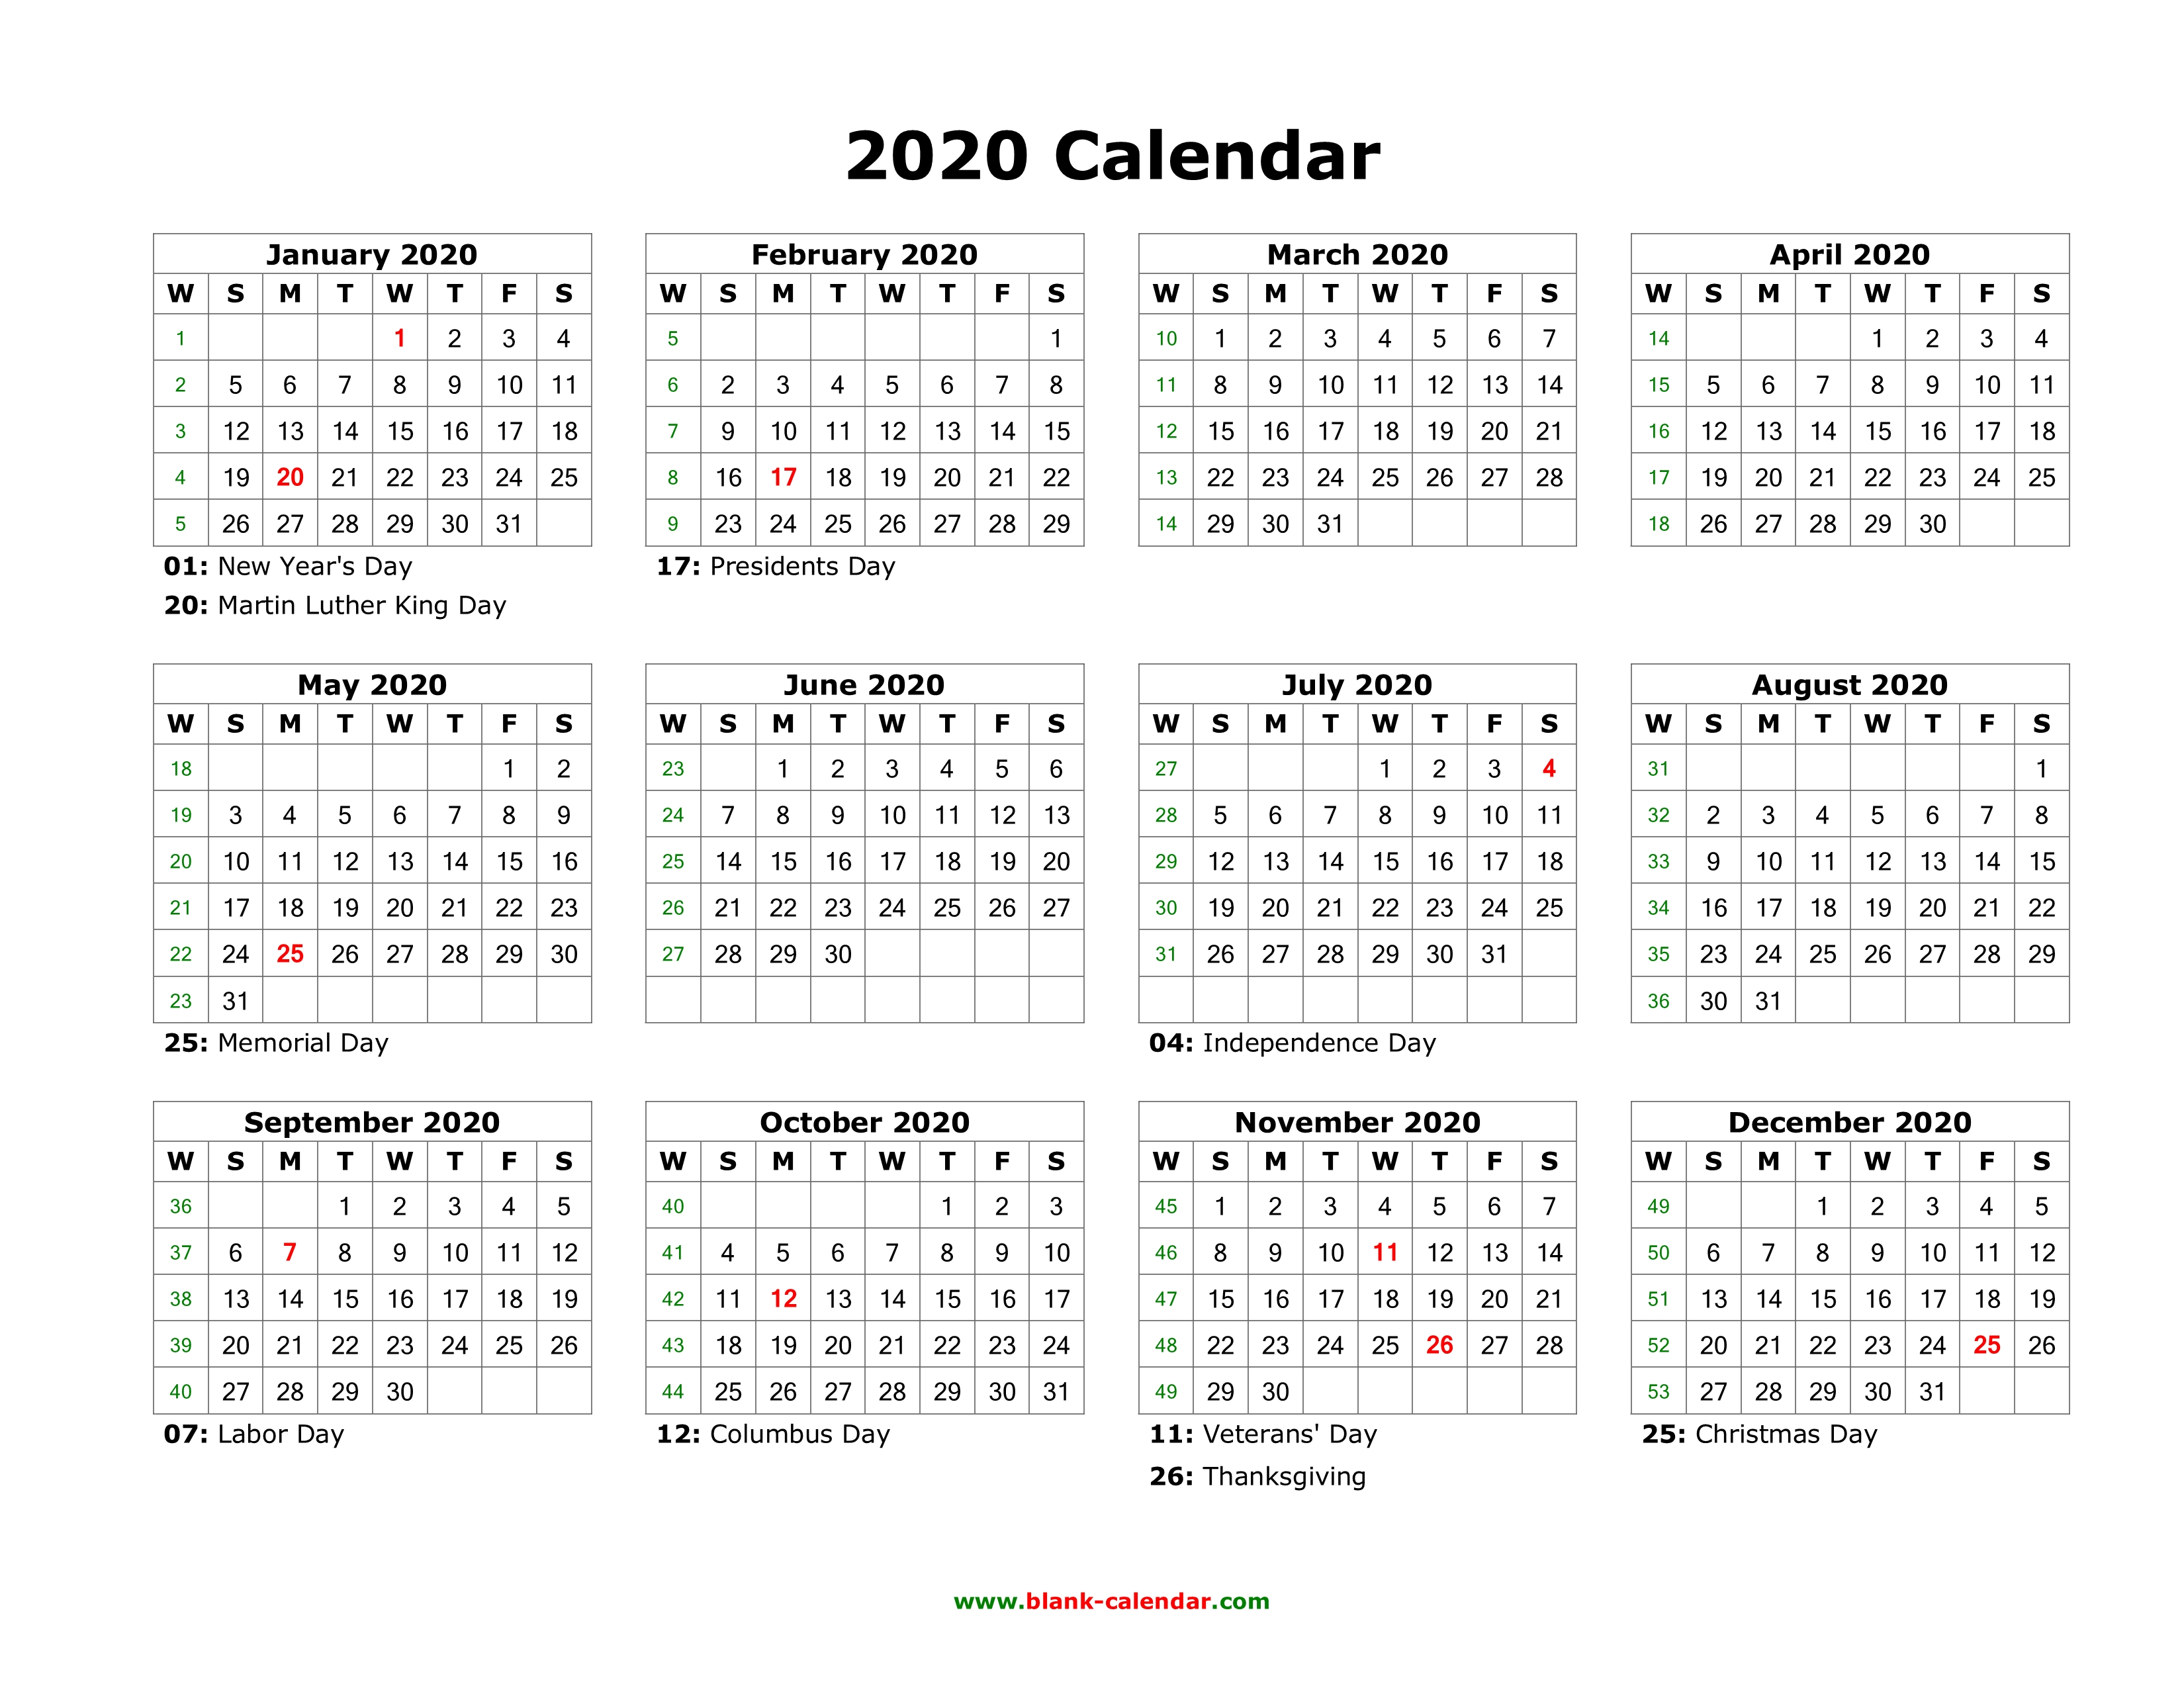 Printable Year Calendar 2020 Download Blank Calendar 2020 with US Holidays (12 months on one